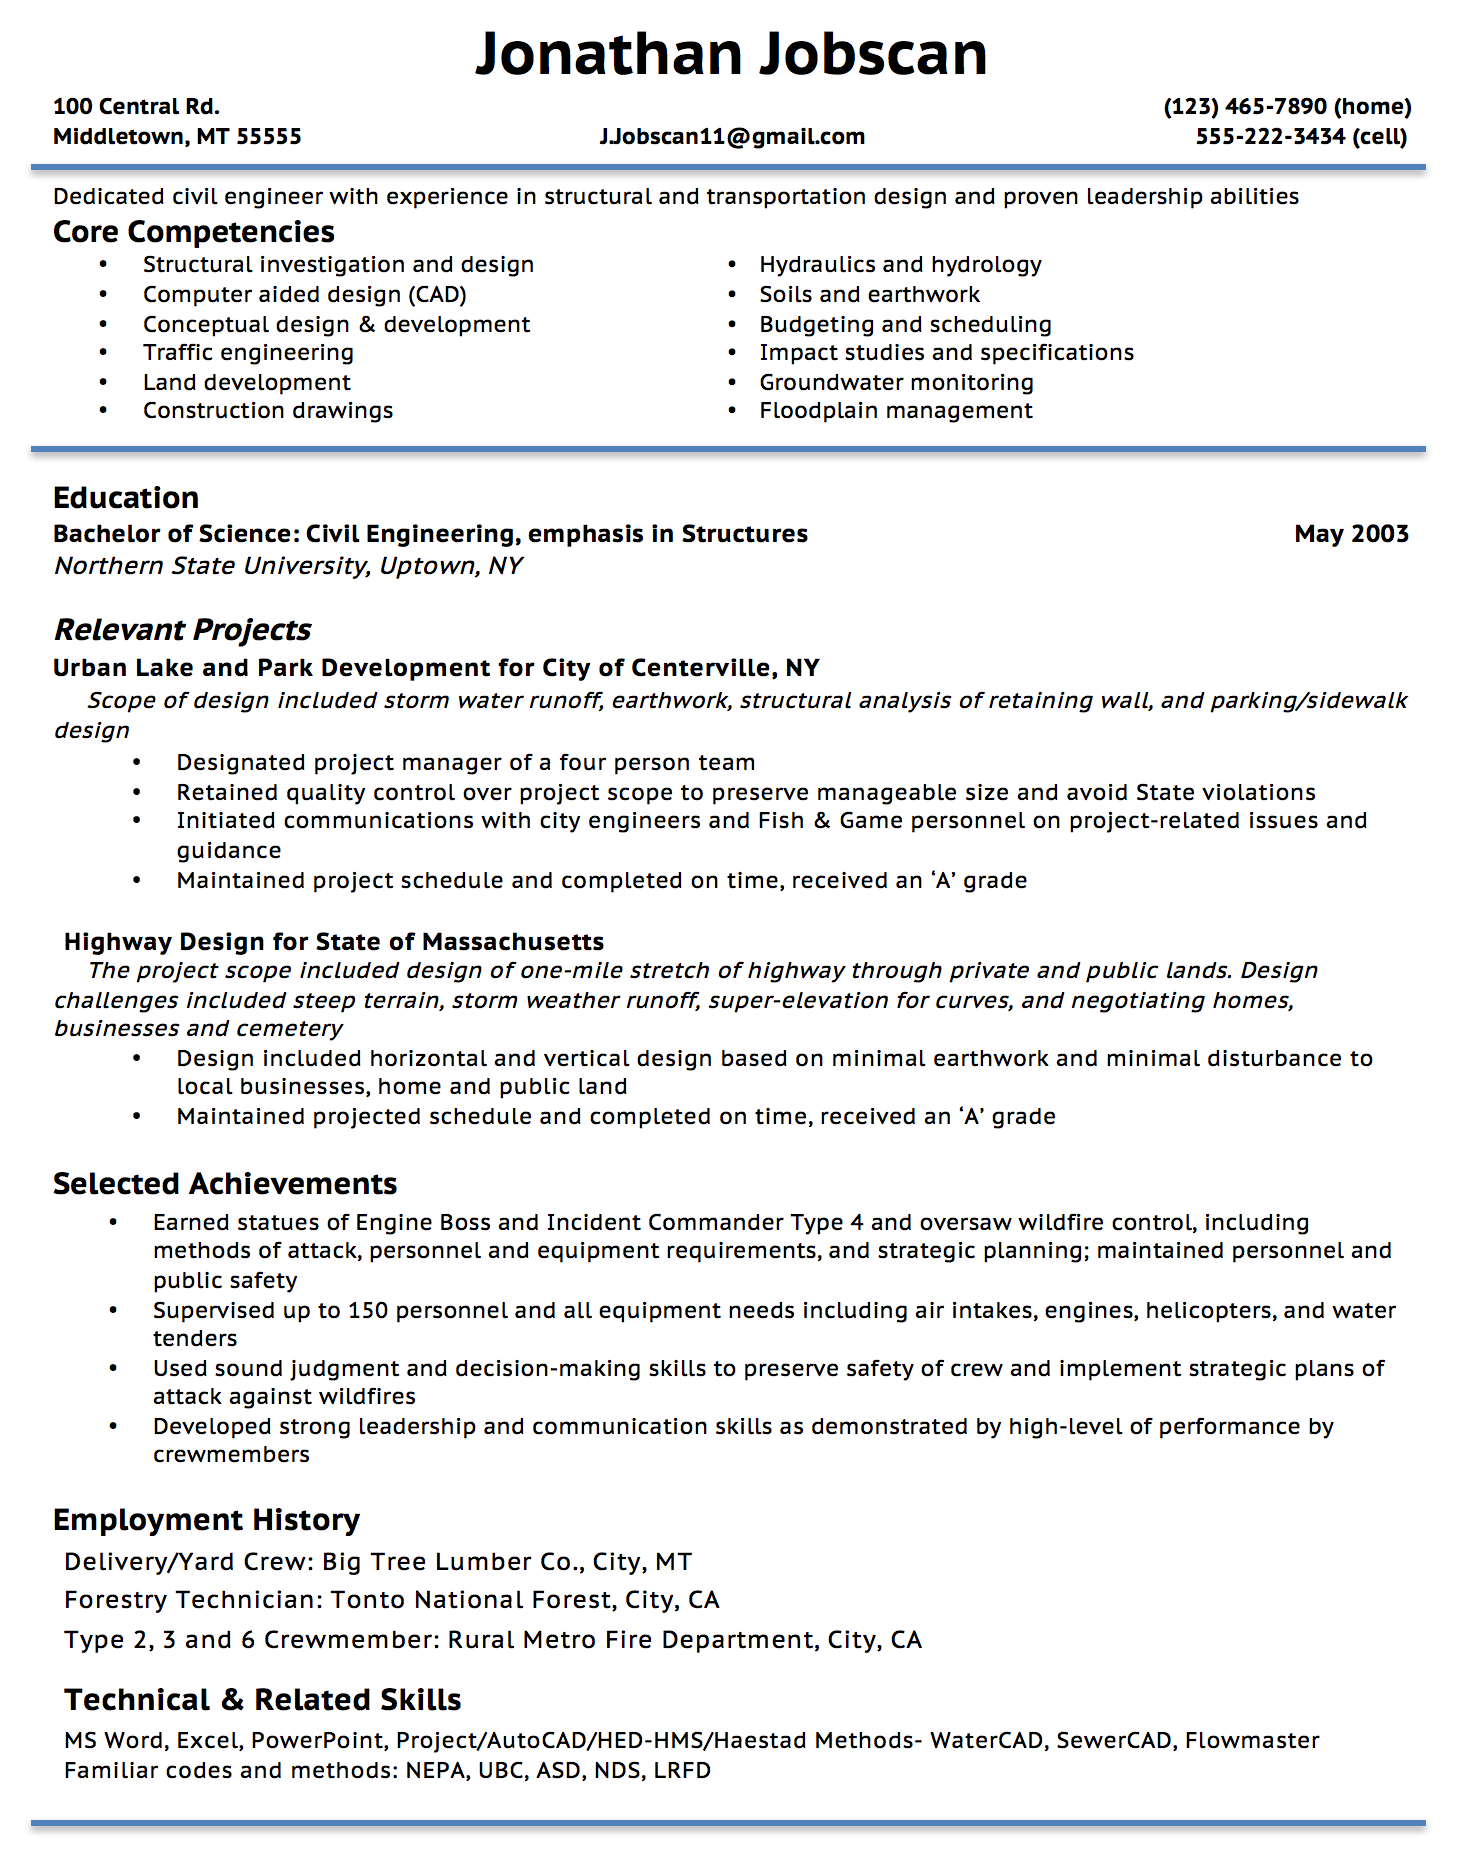 Opposenewapstandardsus  Surprising Resume Writing Guide  Jobscan With Gorgeous Example Of A Functional Resume Format With Endearing Assistant Store Manager Resume Also Executive Assistant Resumes In Addition Technical Resume Examples And Great Resumes Fast As Well As Computer Science Resume Example Additionally Video Resumes From Jobscanco With Opposenewapstandardsus  Gorgeous Resume Writing Guide  Jobscan With Endearing Example Of A Functional Resume Format And Surprising Assistant Store Manager Resume Also Executive Assistant Resumes In Addition Technical Resume Examples From Jobscanco